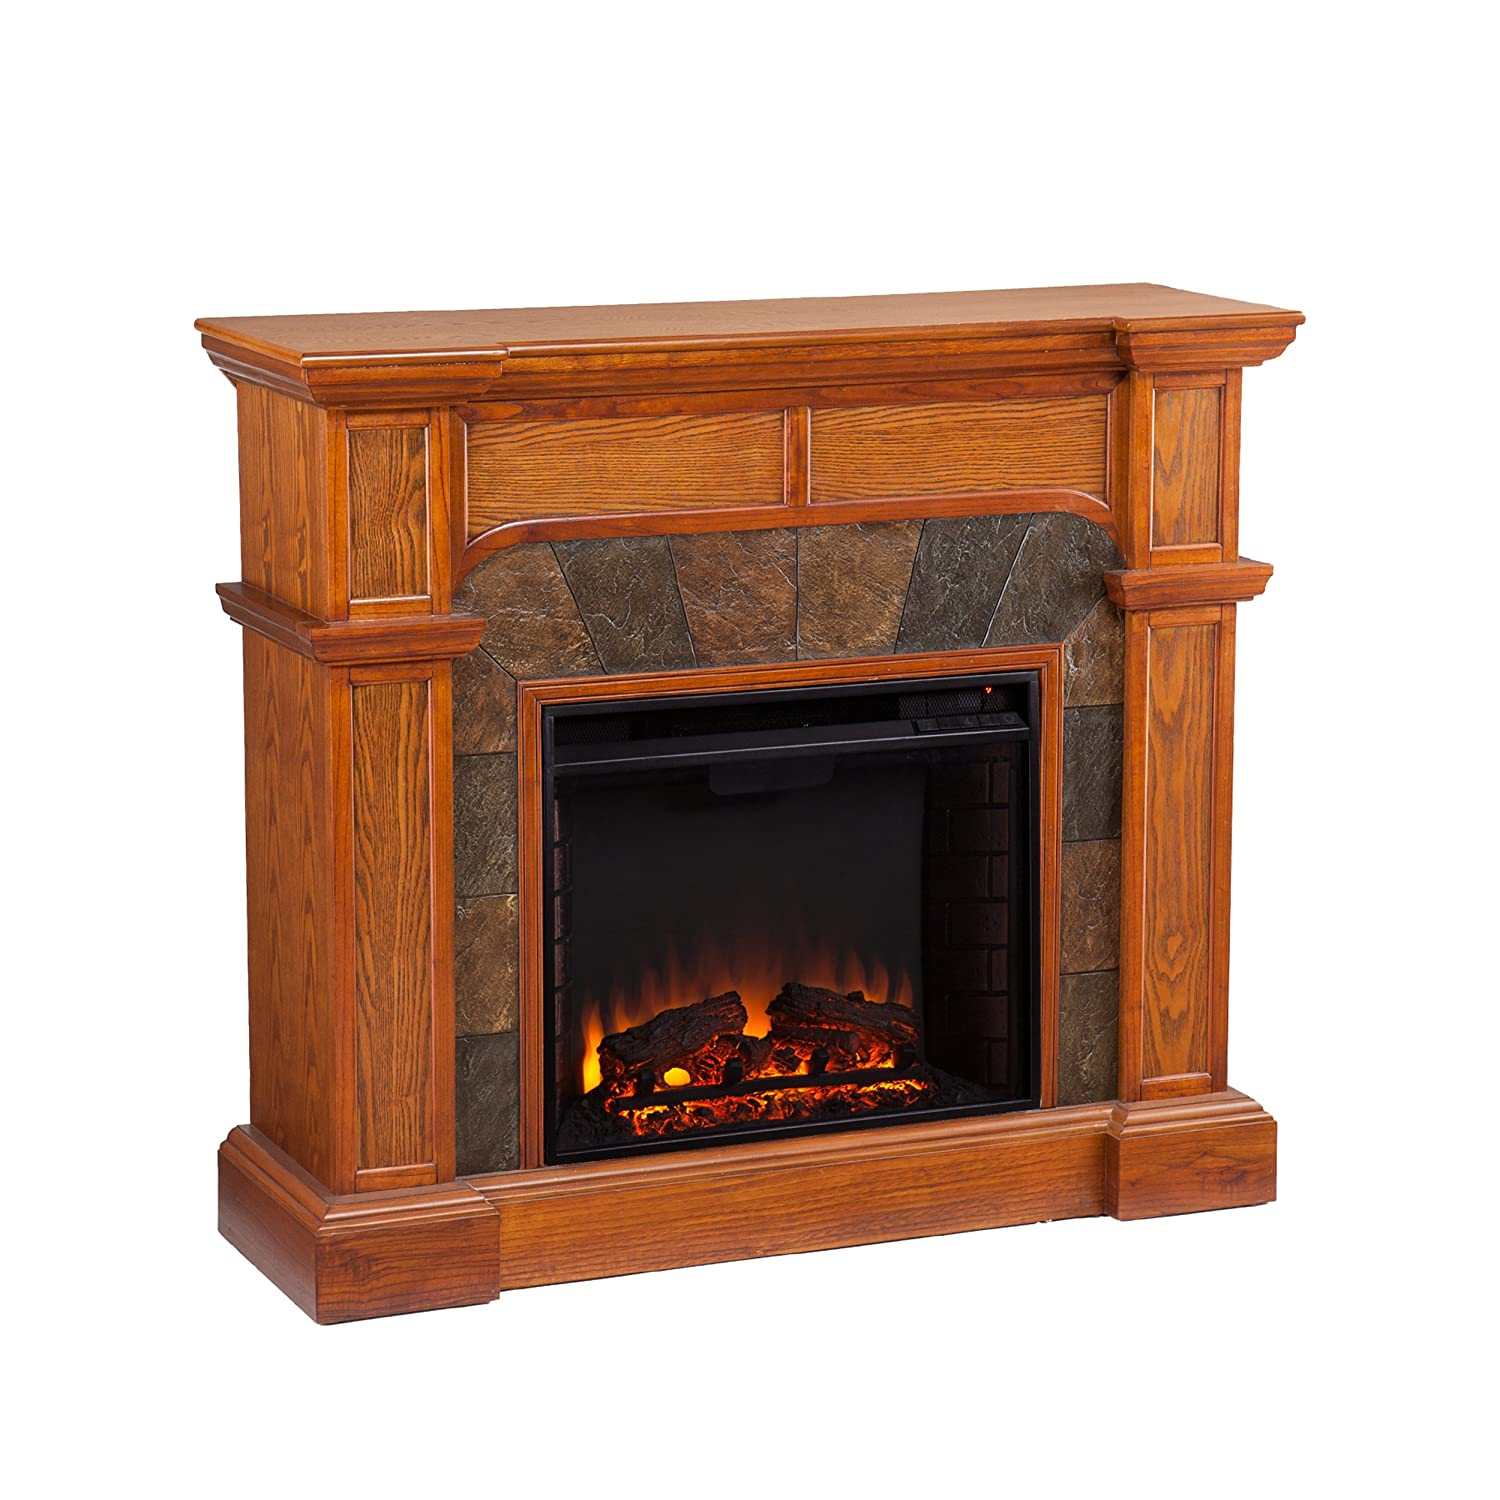 Amazon.com: Cartwright Convertible Electric Fireplace - Mission Oak: Kitchen & Dining